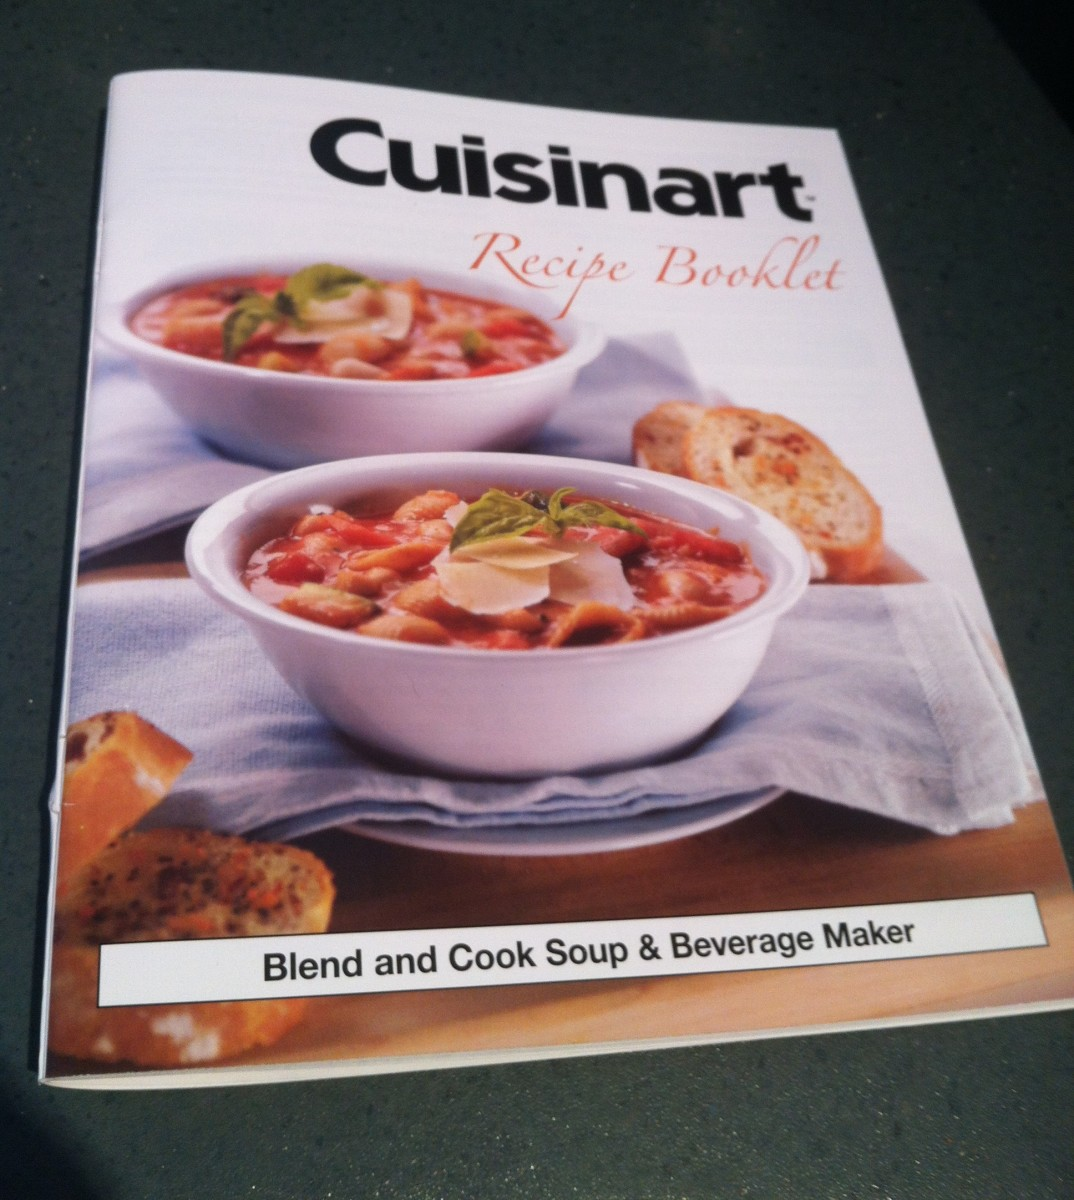 The recipe booklet that comes with the Cuisinart Blend and Cook Soup & Beverage Maker contains lots of healthy and delicious recipes.